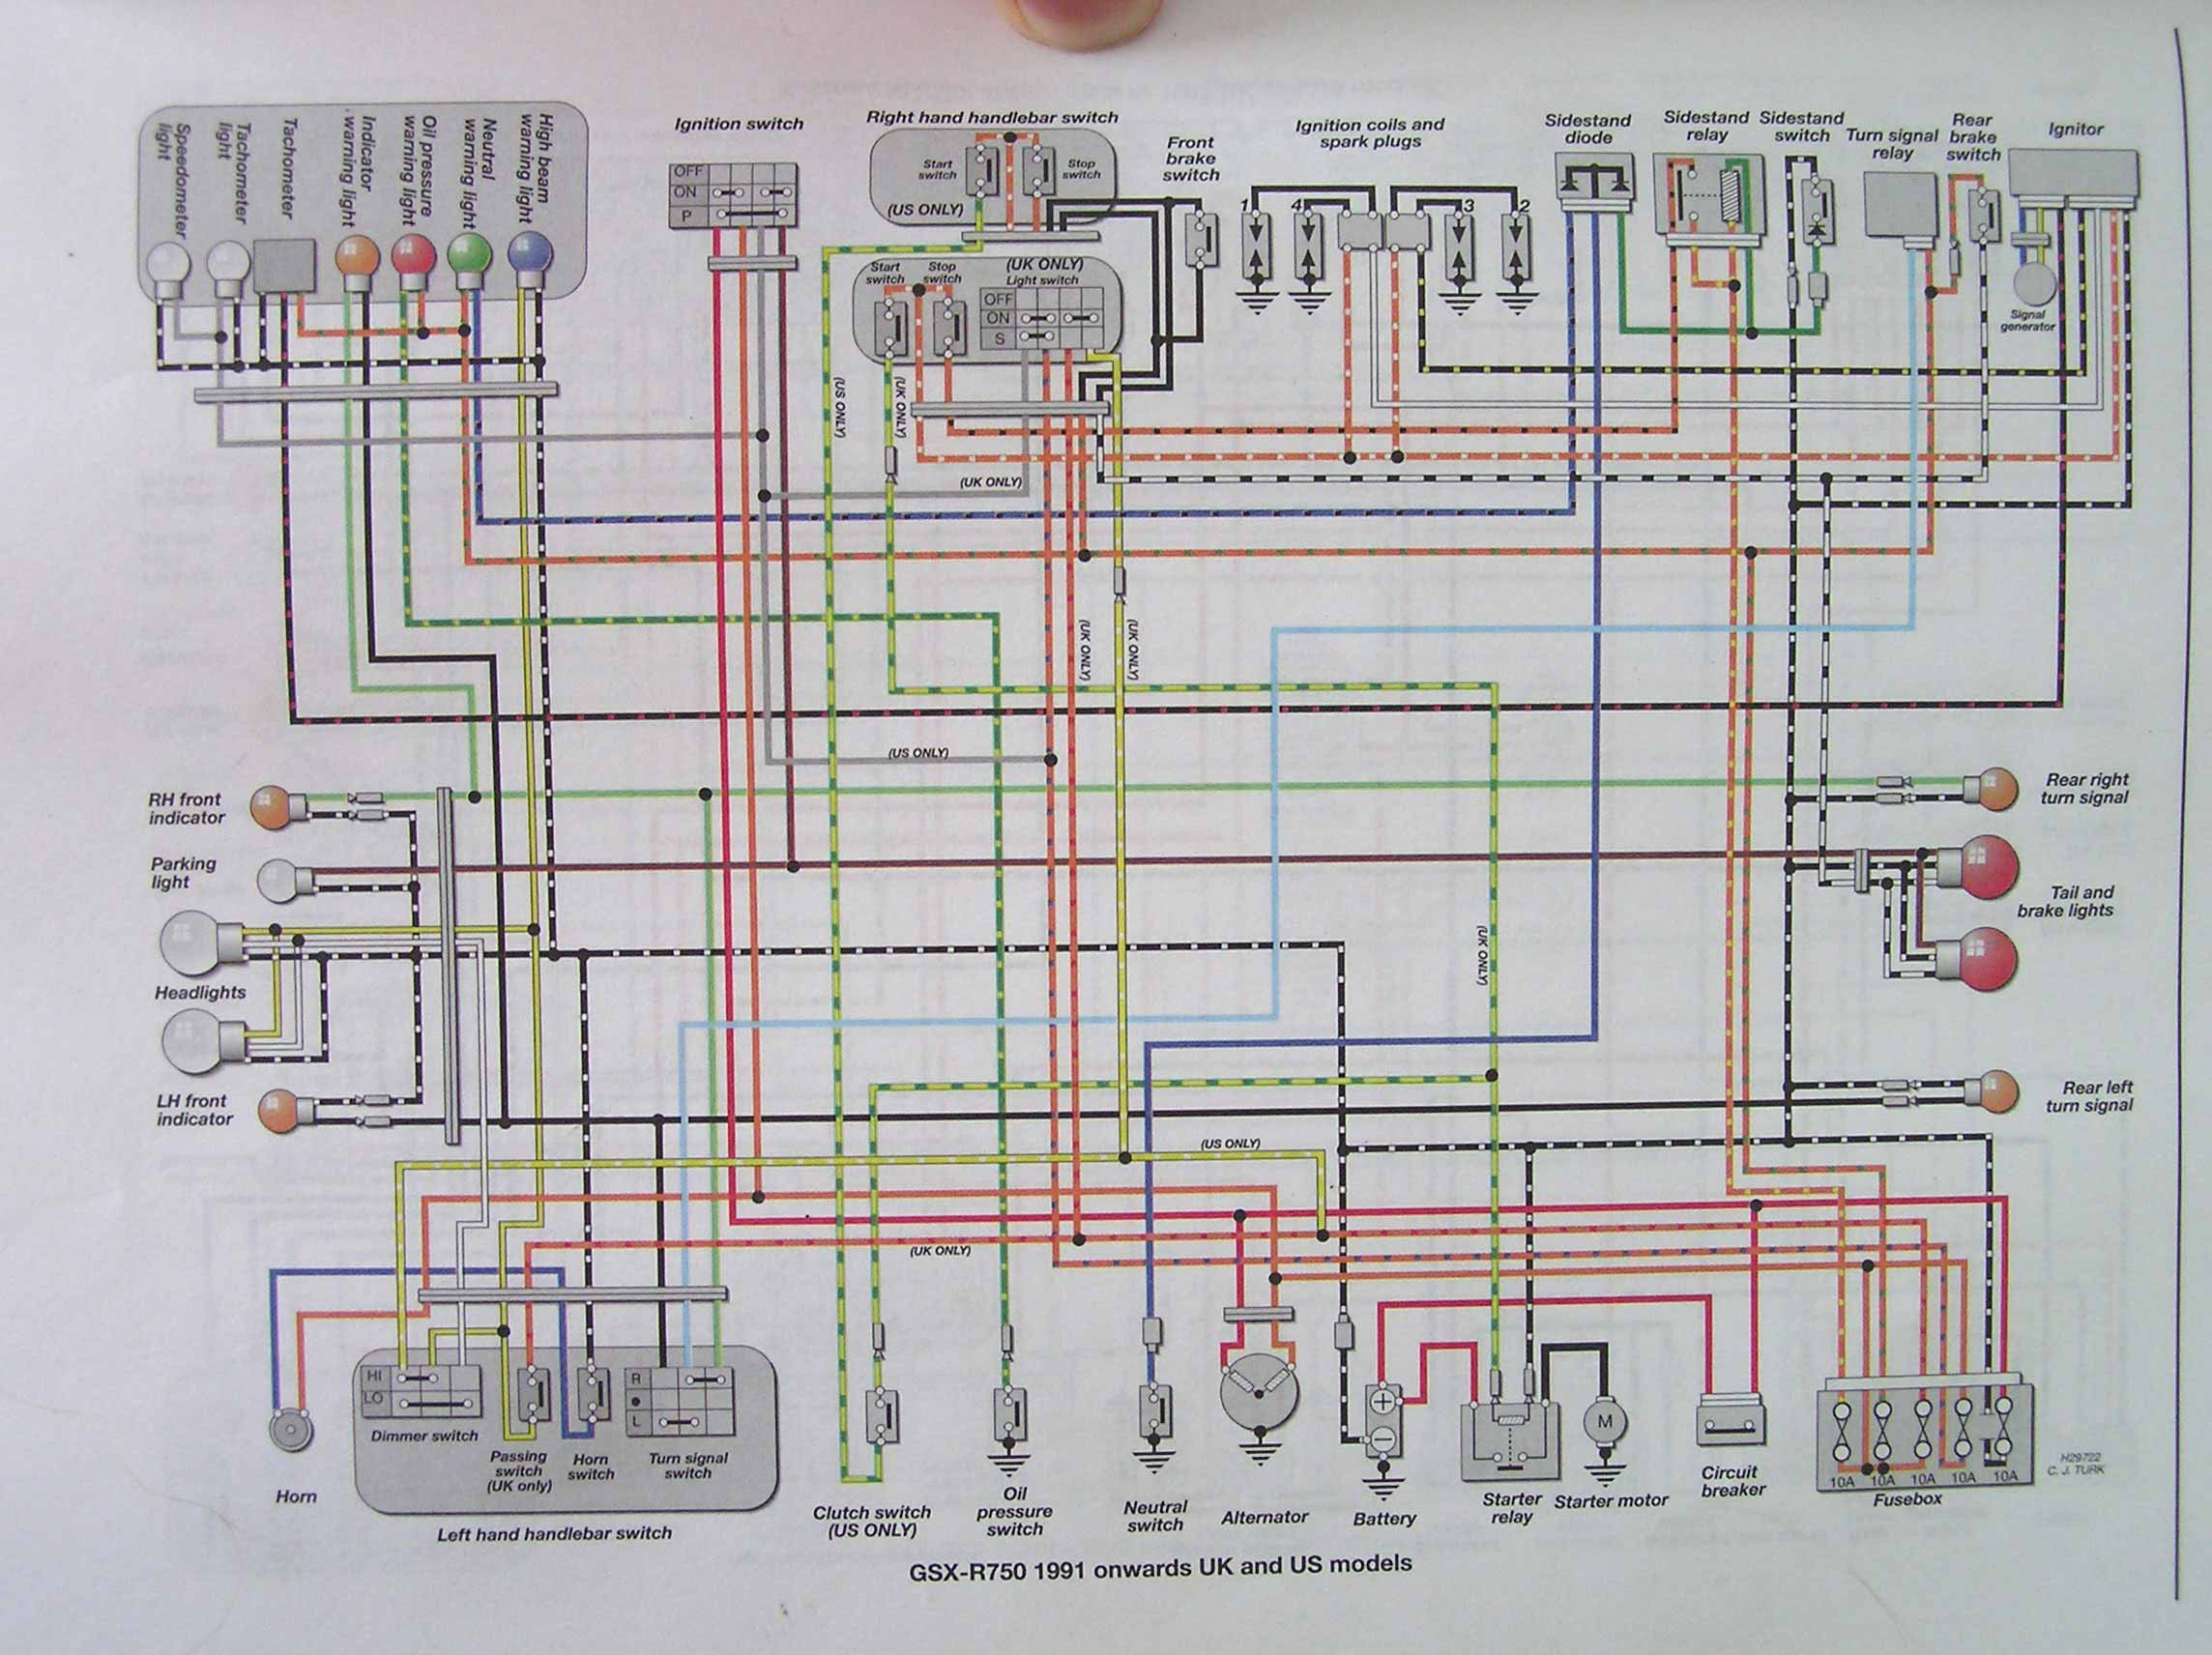 suzuki motorcycle wiring diagram suzuki image suzuki wiring diagram motorcycle suzuki auto wiring diagram on suzuki motorcycle wiring diagram